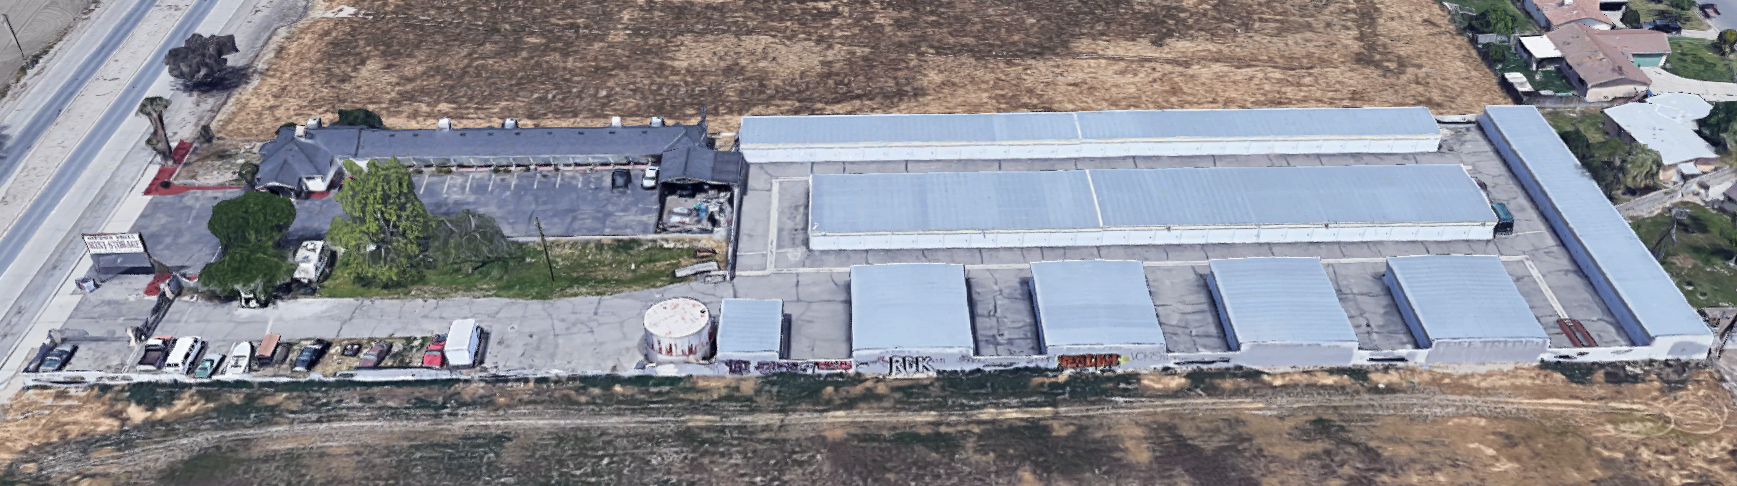 Sierra Vista Mini Storage Gives A Savvy Investor The Opportunity To Acquire  An Underperforming Facility Situated On The Heavily Trafficked Union Ave In  ...